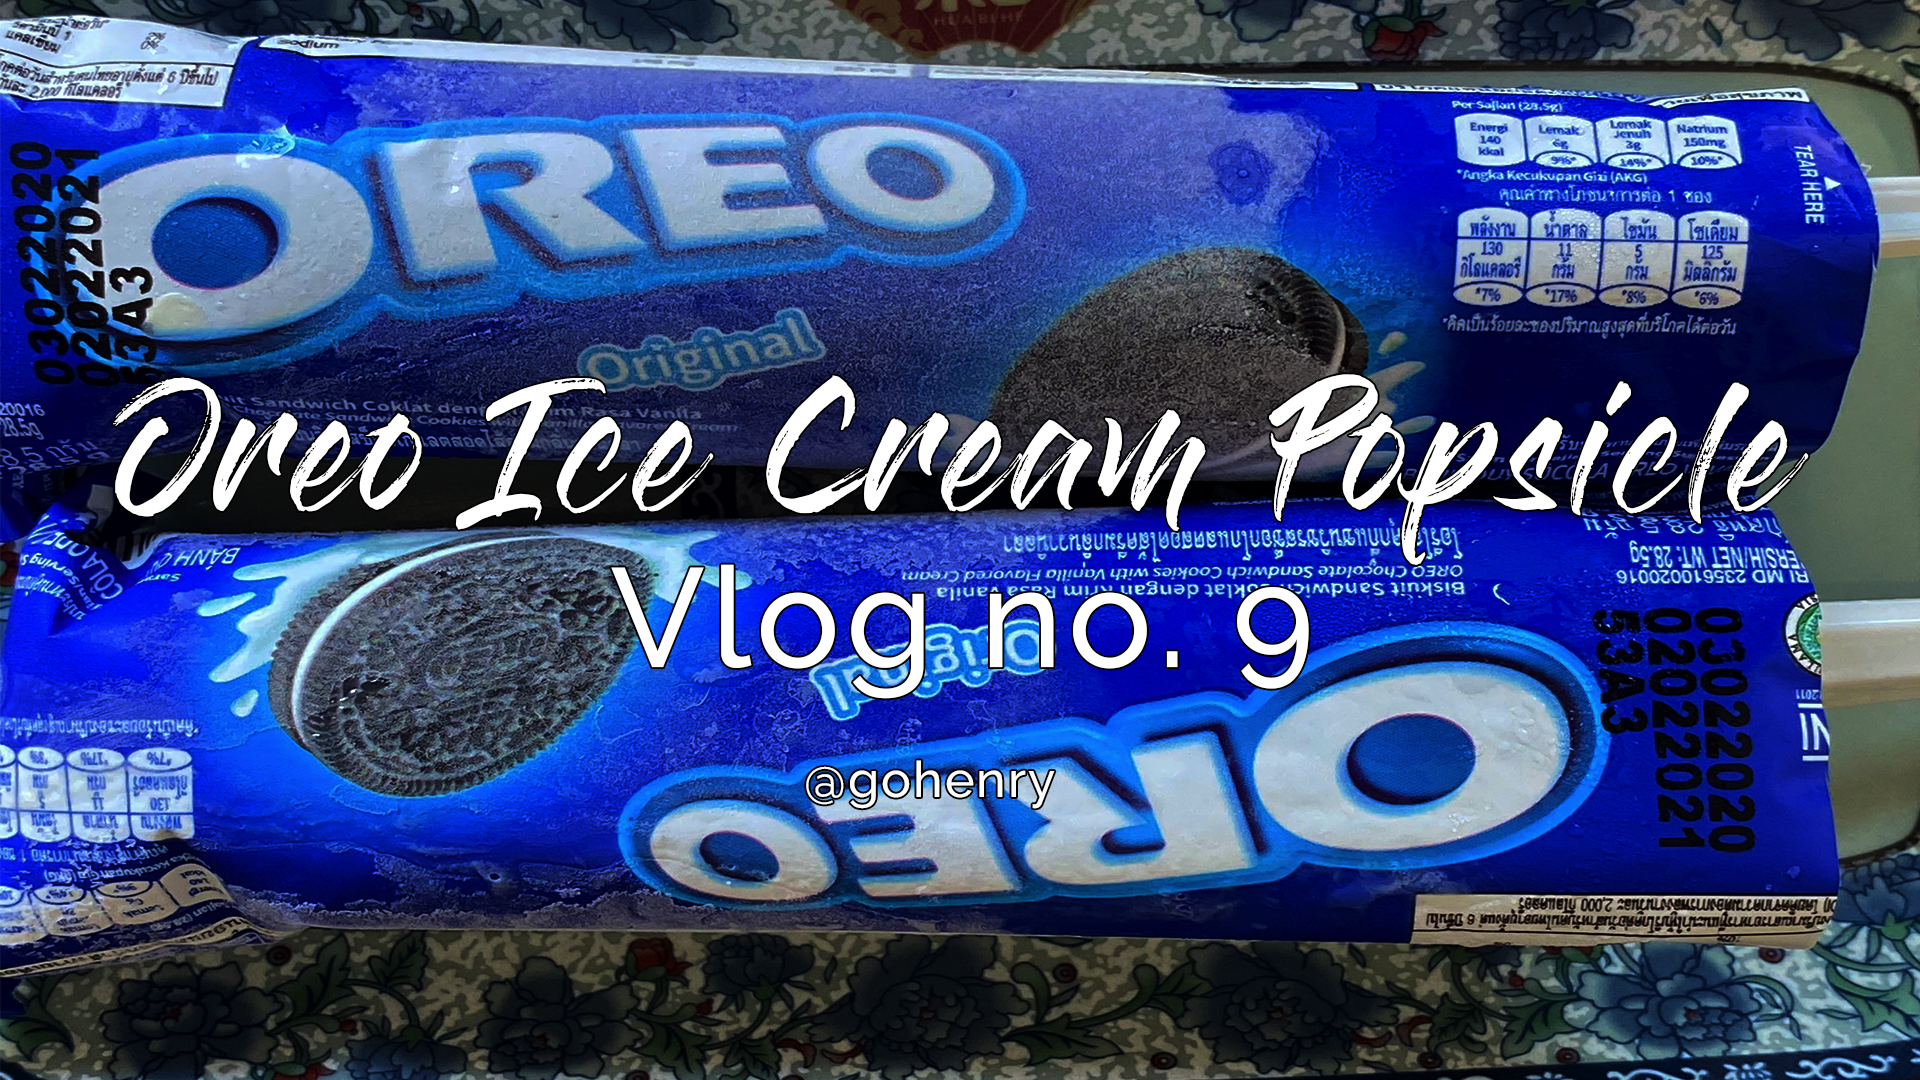 Oreo Ice Cream Popsicle gohenry.png